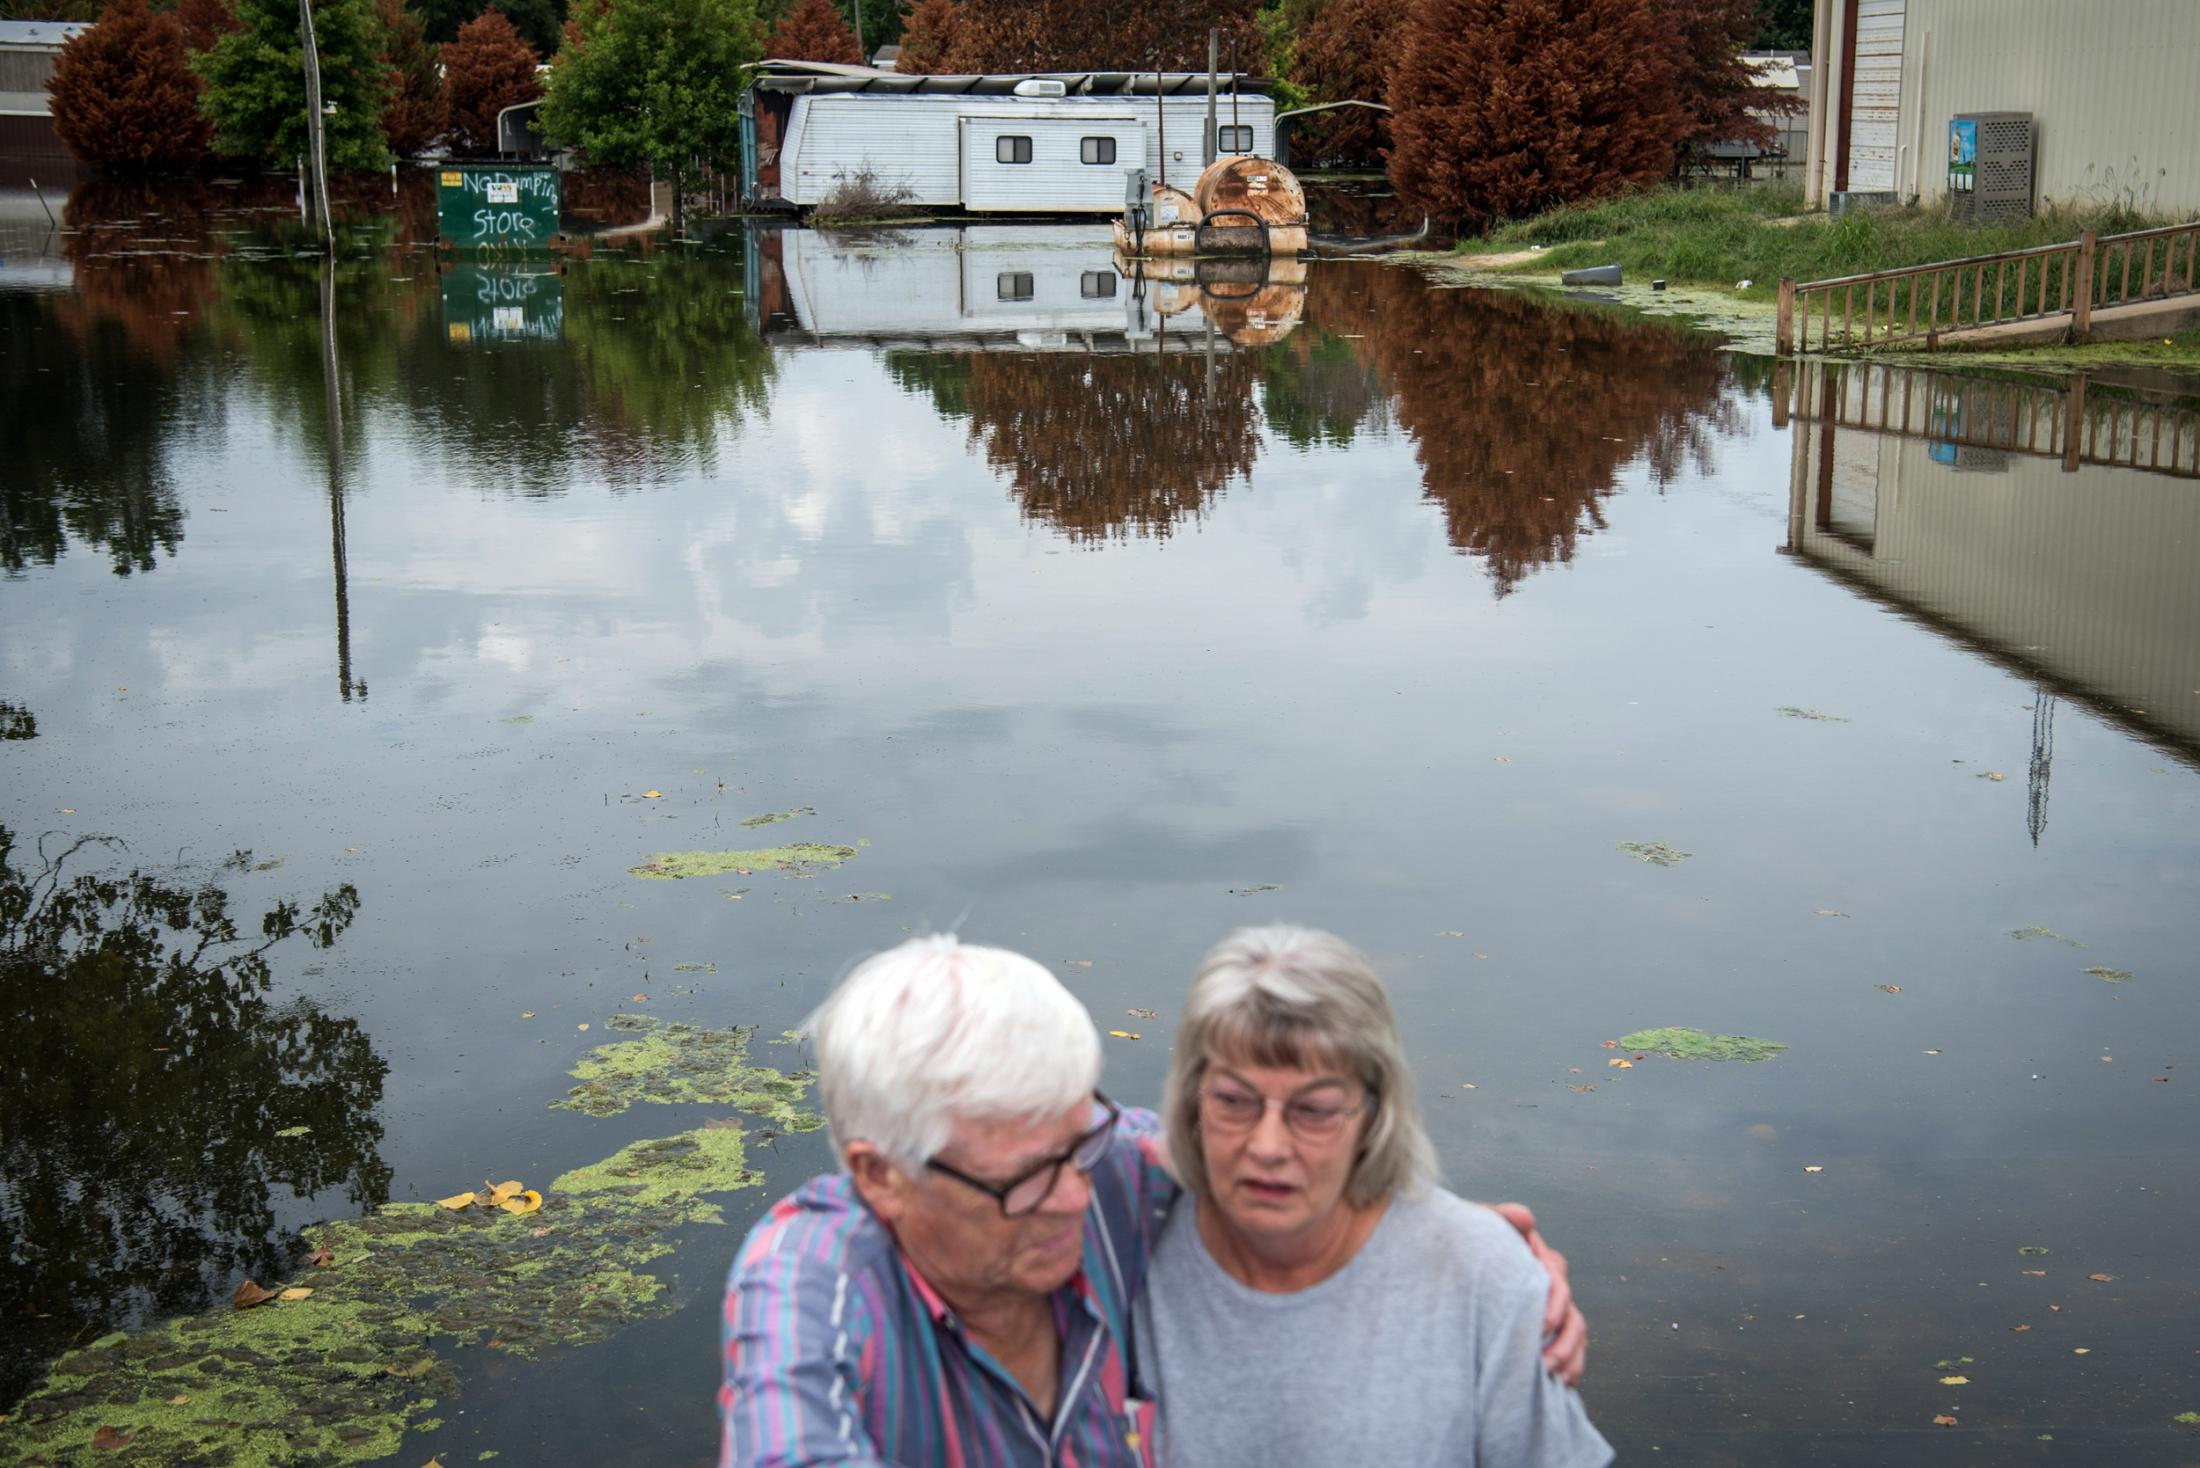 Don Johnson, left, hugs his daughter, Beverly Cooper, near floodwater at Eagle Lake in Warren County, Mississippi on July 21, 2019. Cooper is temporarily living in a camper as a result of the flood. Photo by Rory Doyle for The Guardian.